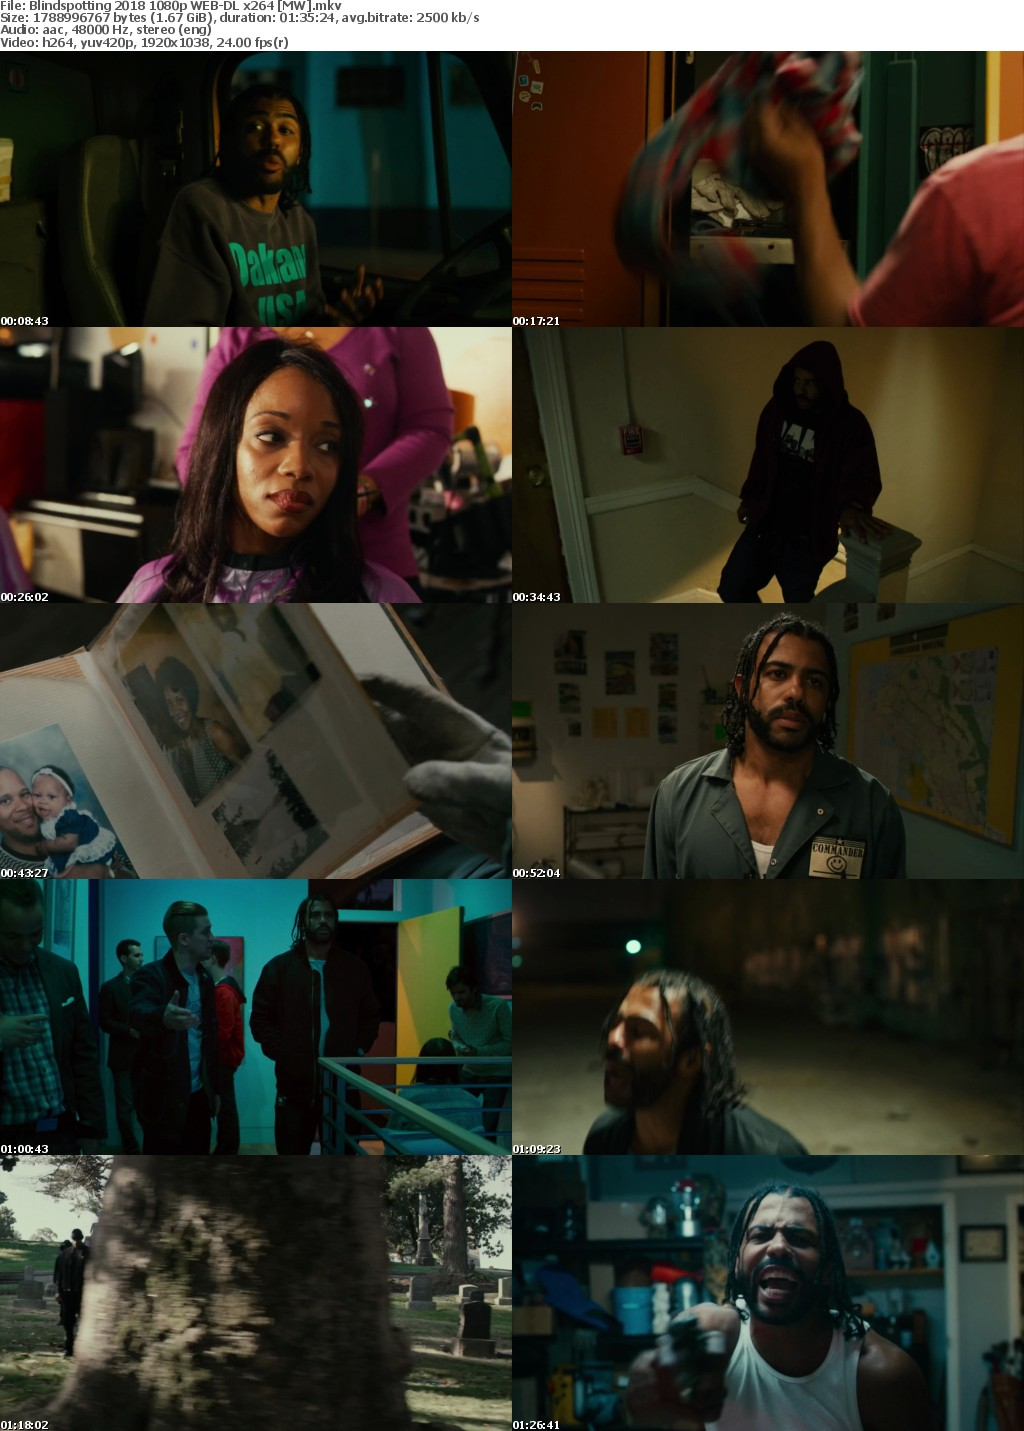 Blindspotting (2018) 1080p WEB-DL x264 MW